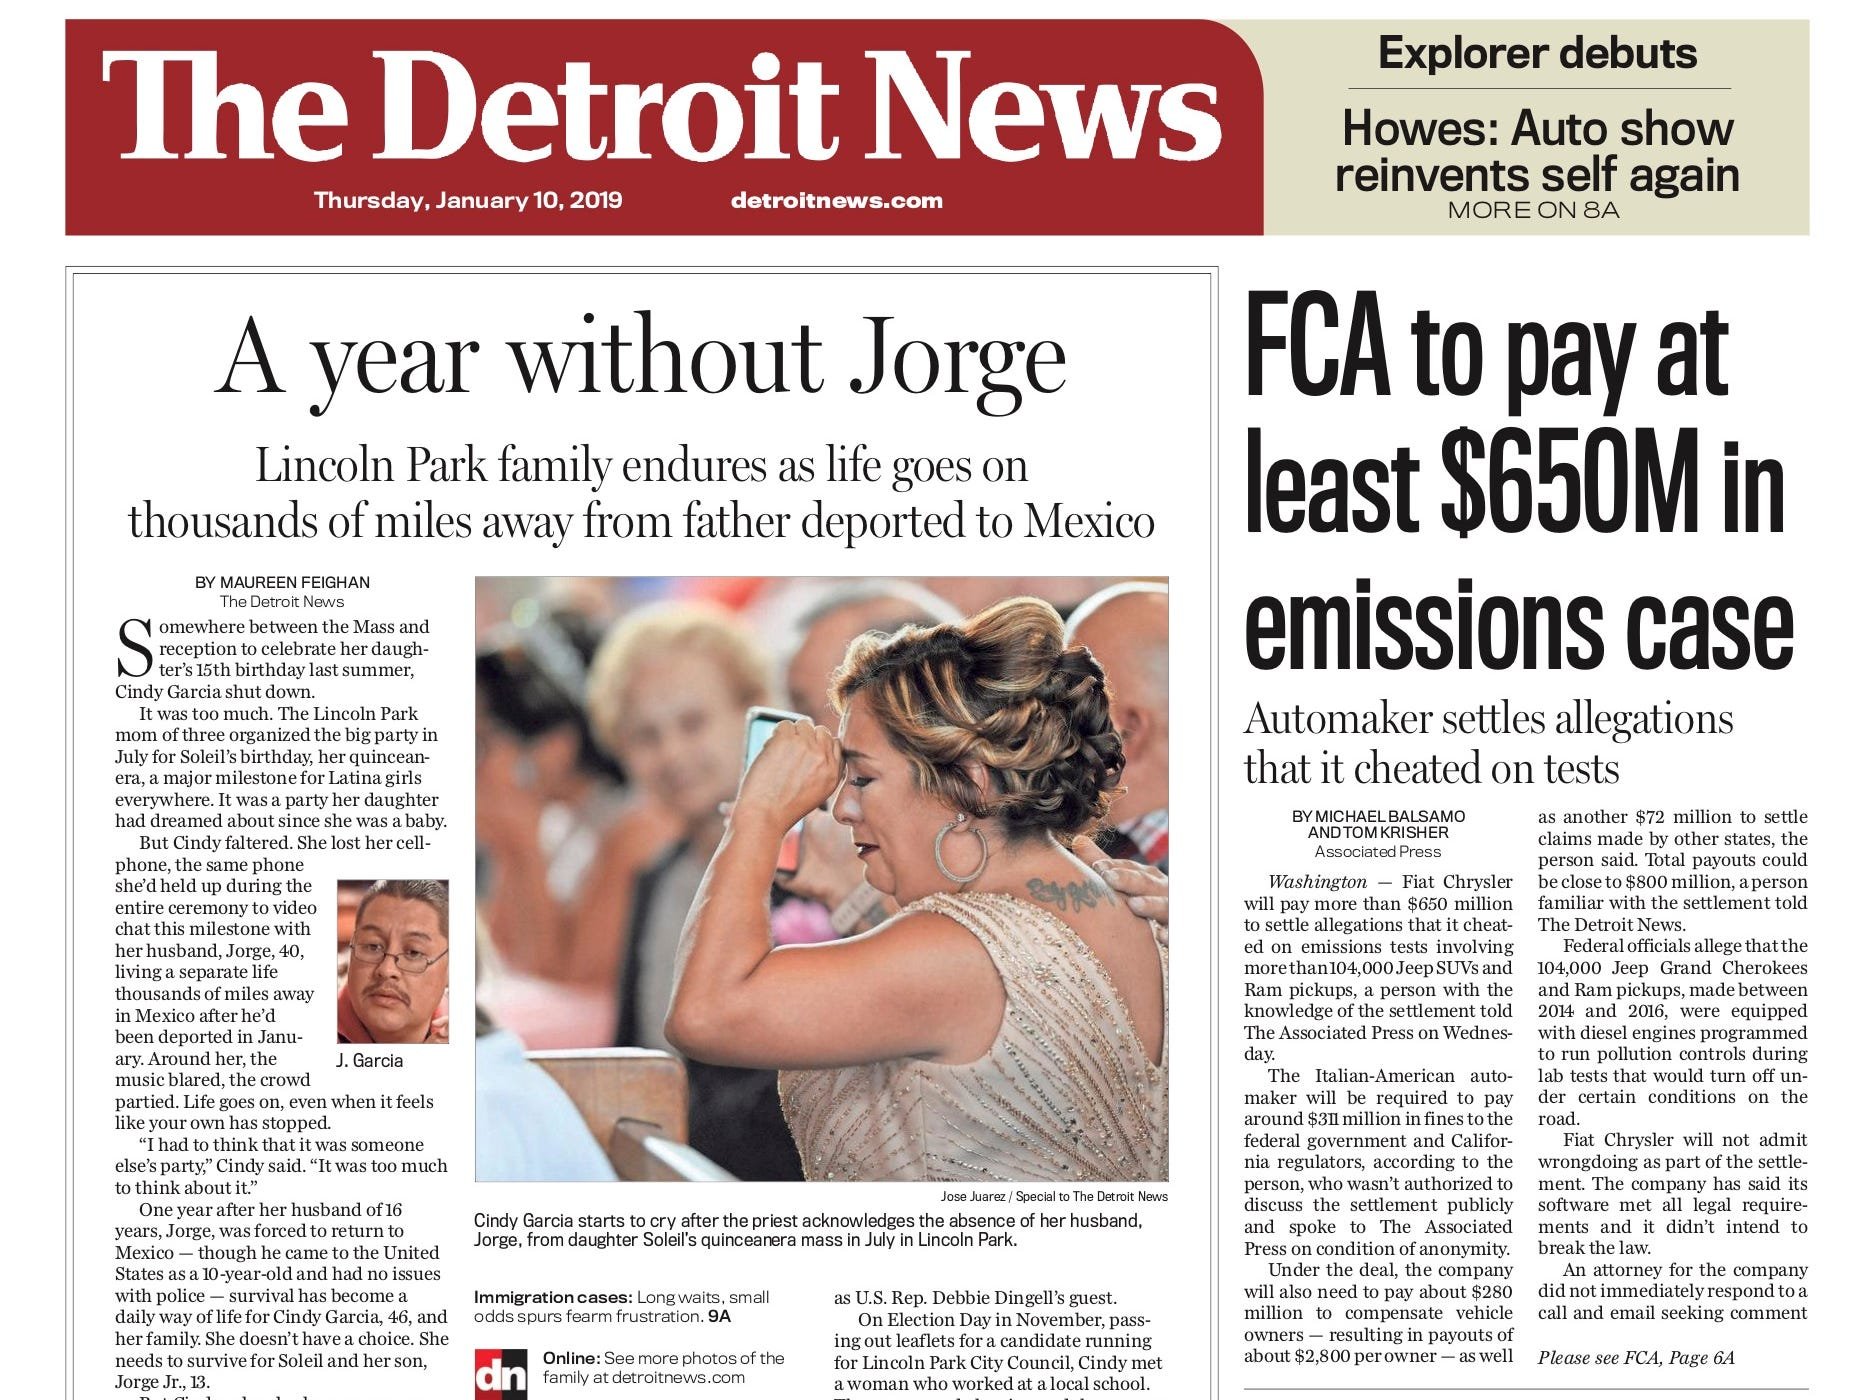 The front page of the Detroit News on January 10, 2019.